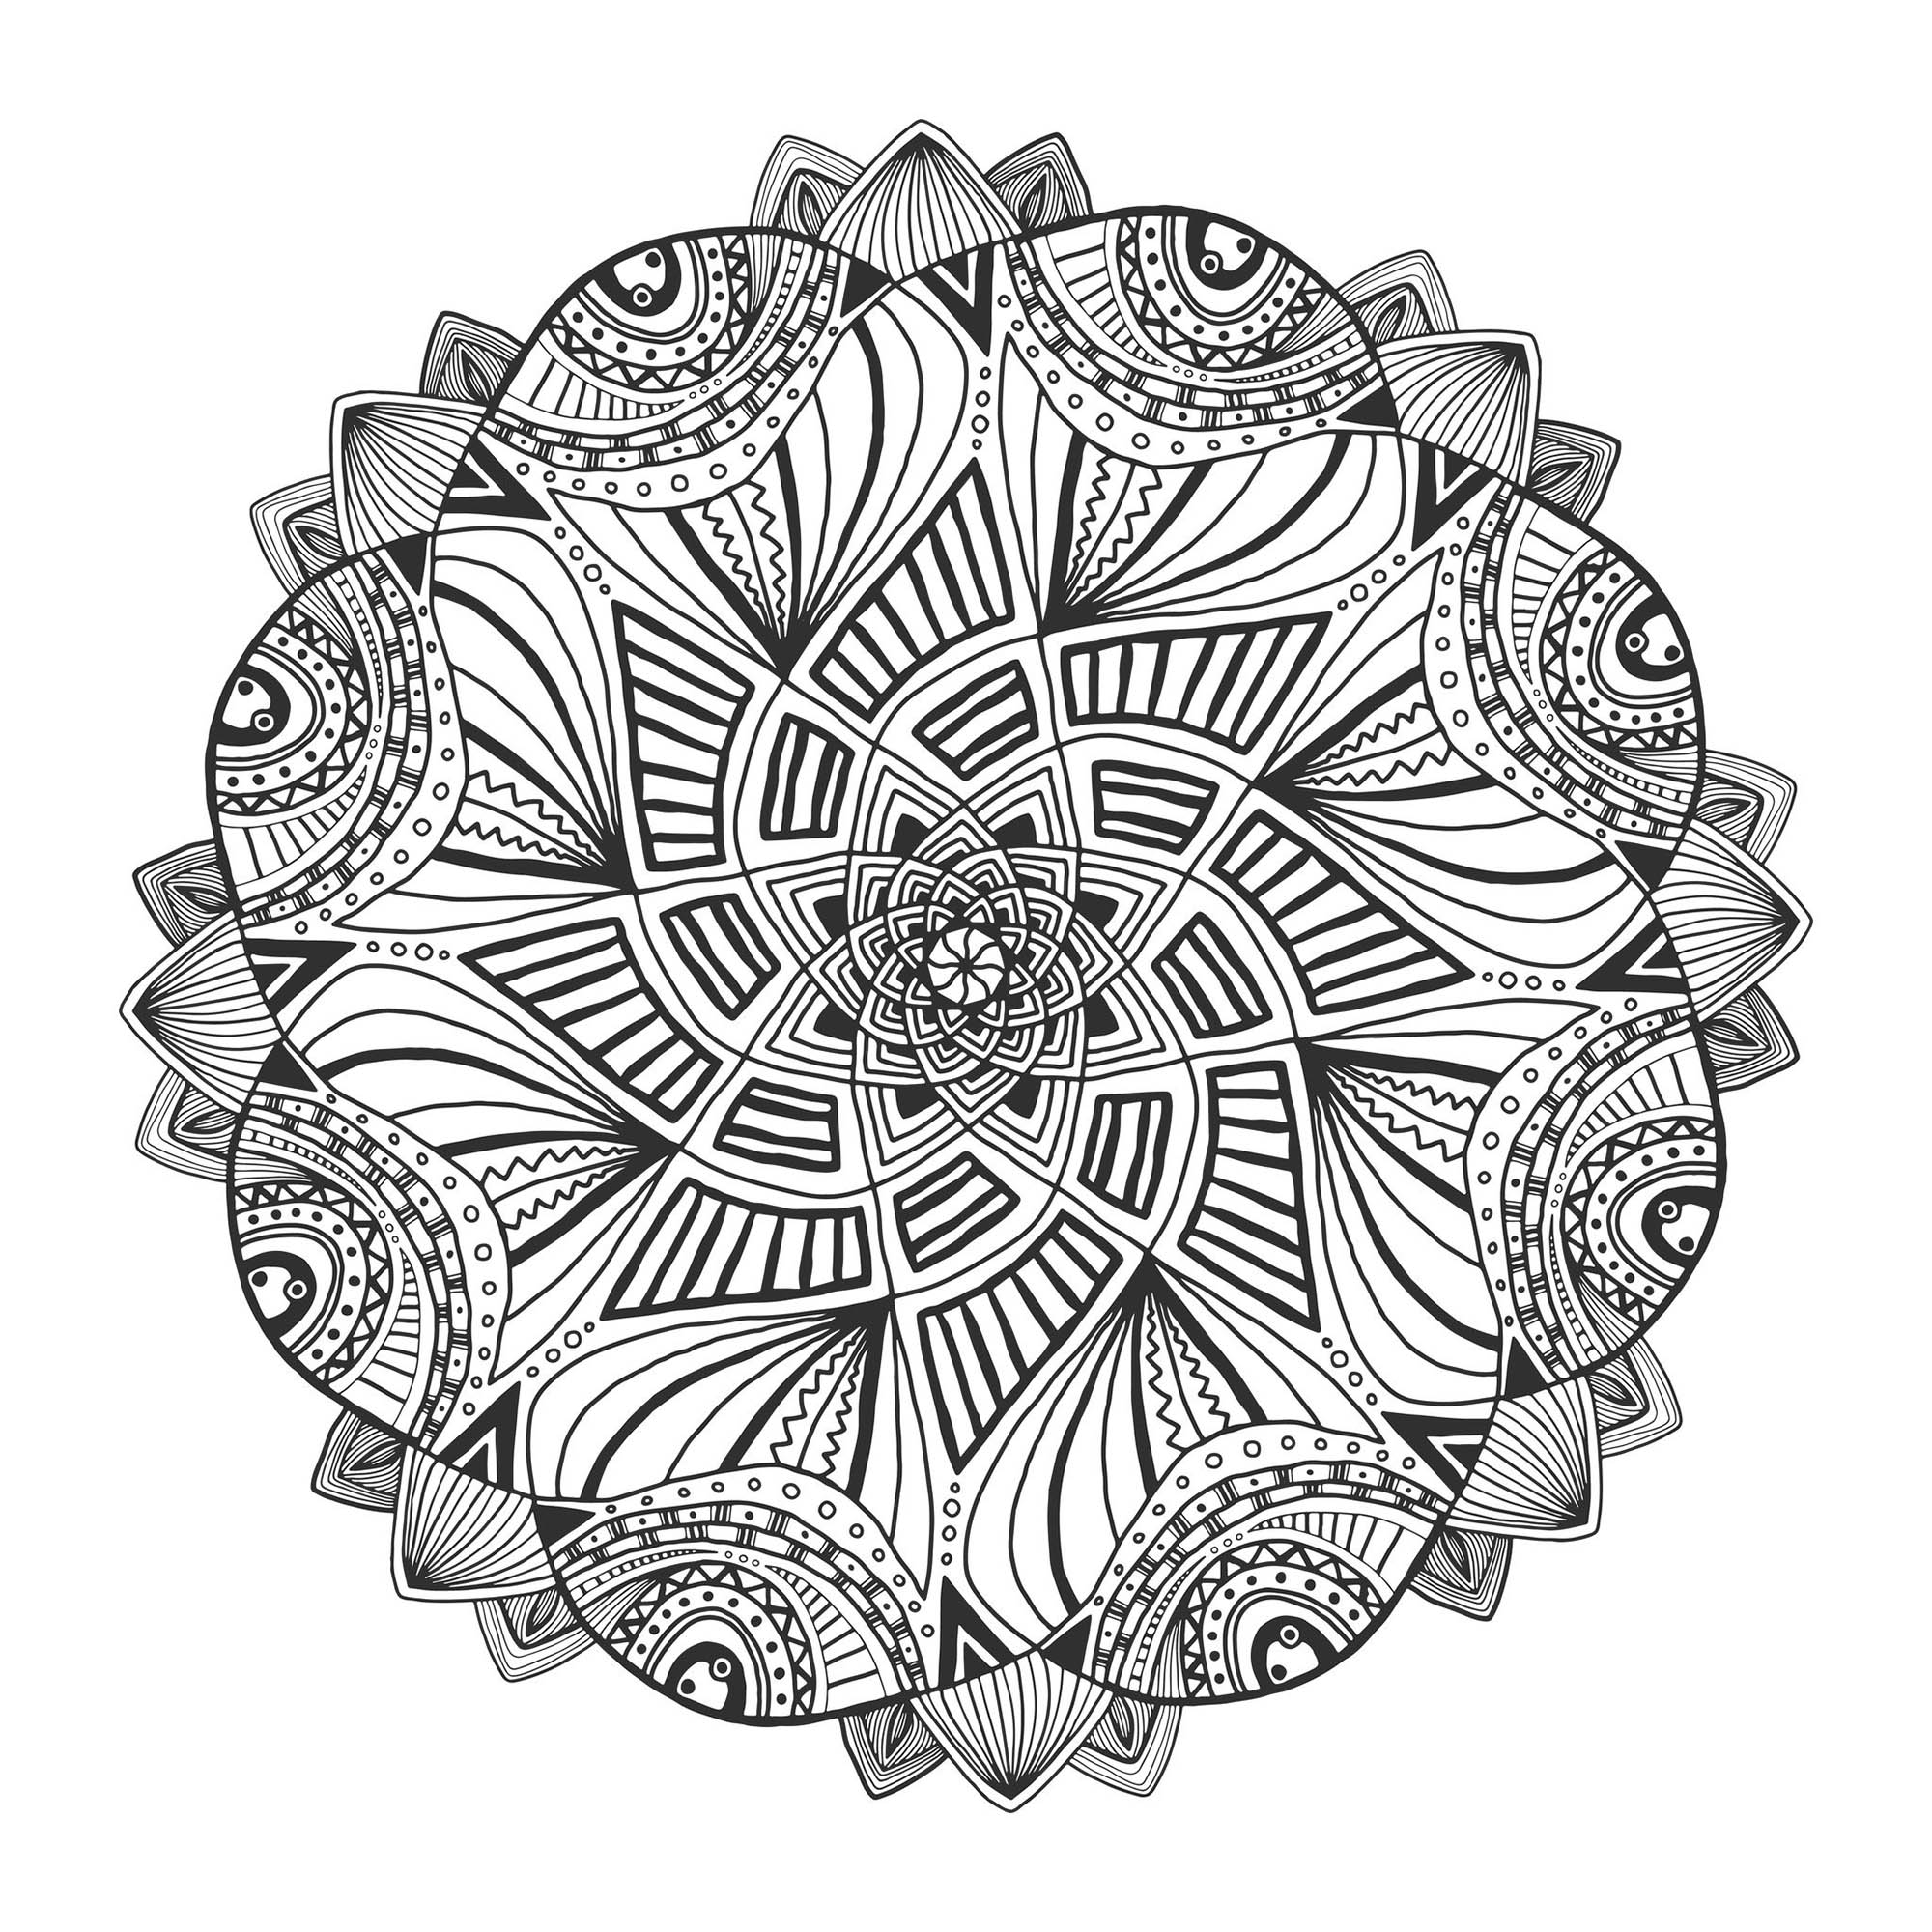 coloring mandala with color sketchbook 100 mandalas challenge week 12 kitskorner coloring with color mandala